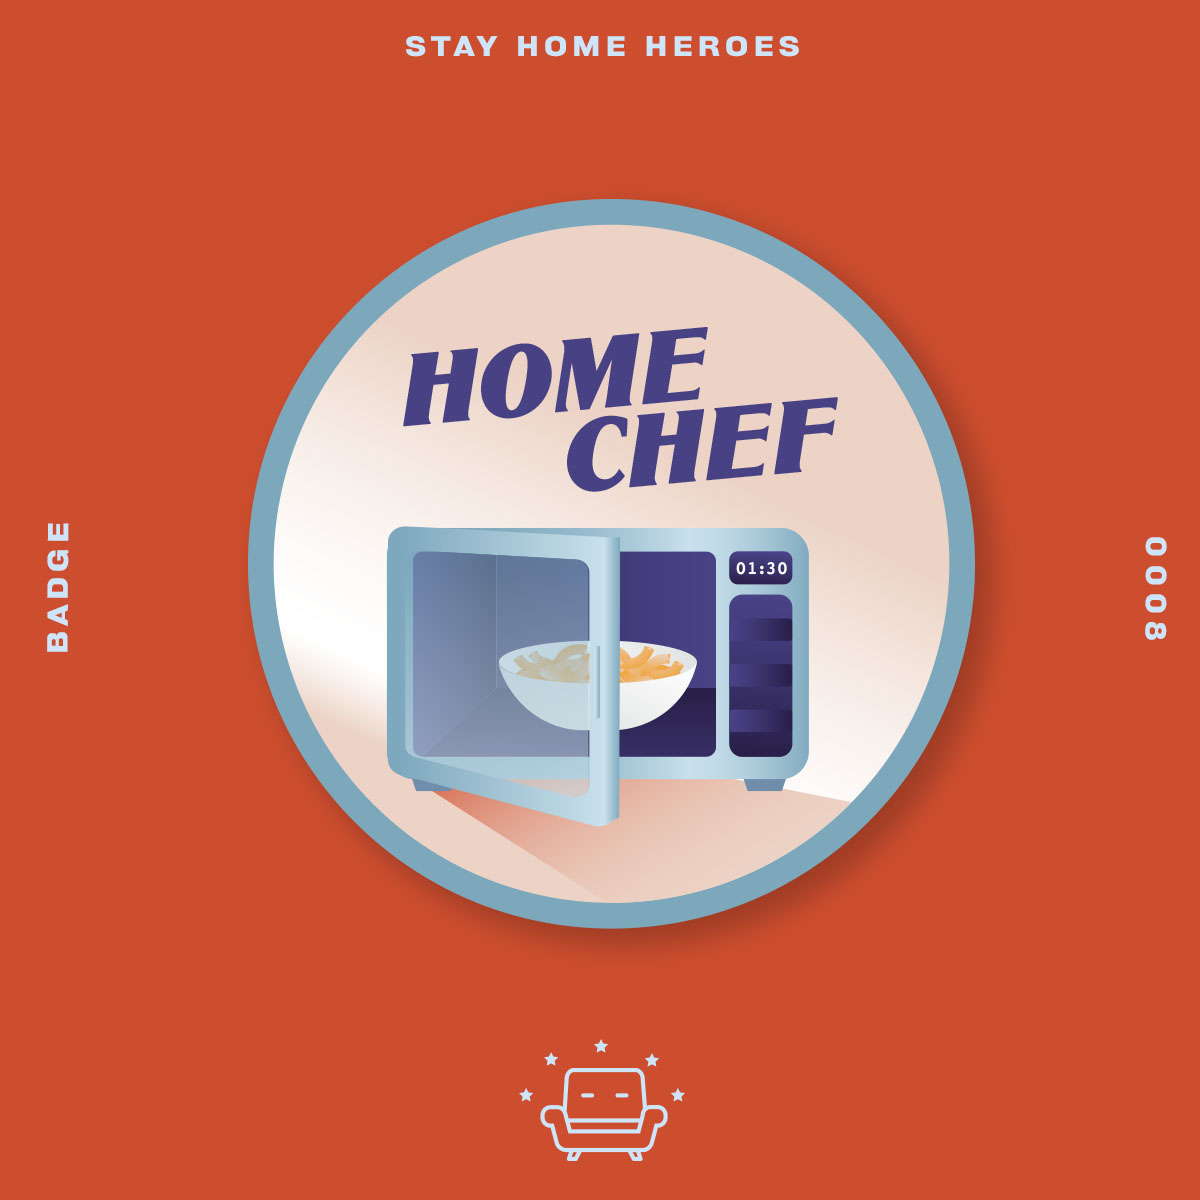 SHH_ALT_08 – Home Chef